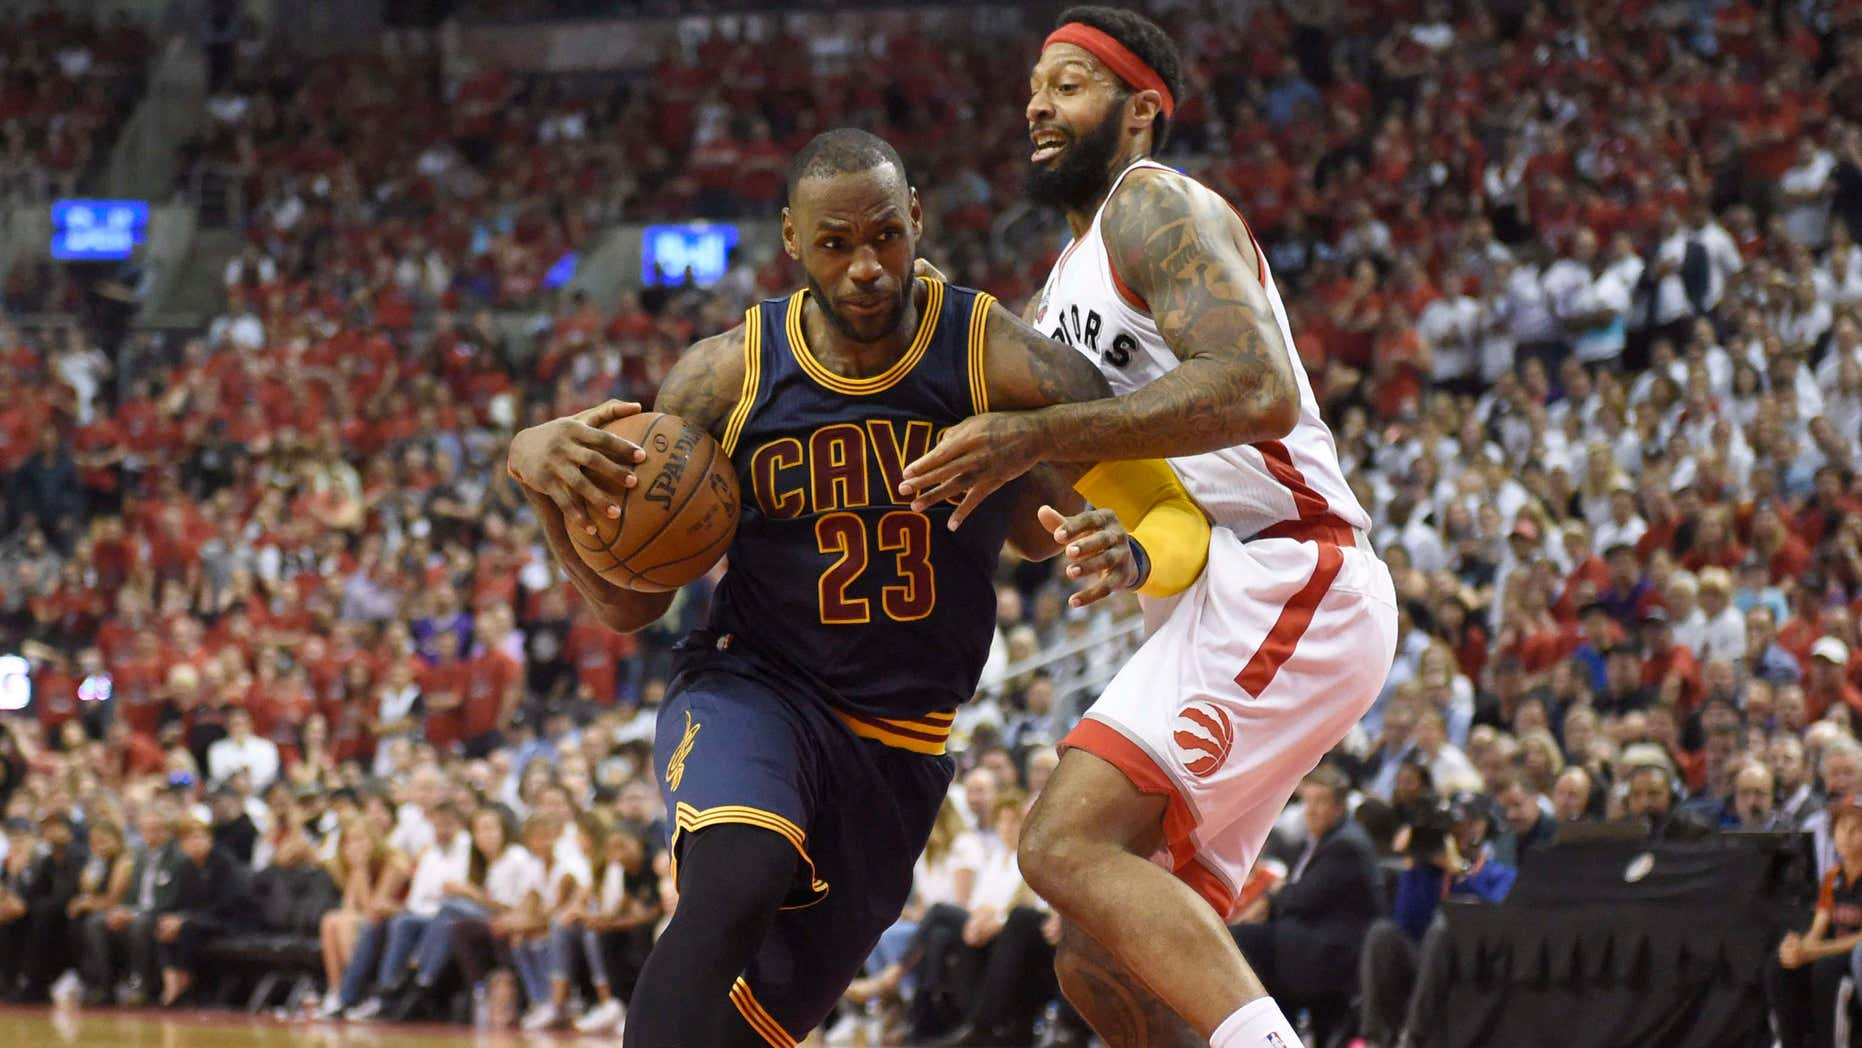 Cleveland Cavaliers forward LeBron James drives to the basket as Toronto Raptors forward James Johnson defends during the second half of Game 6 of the NBA basketball Eastern Conference finals, Friday, May 27, 2016, in Toronto.